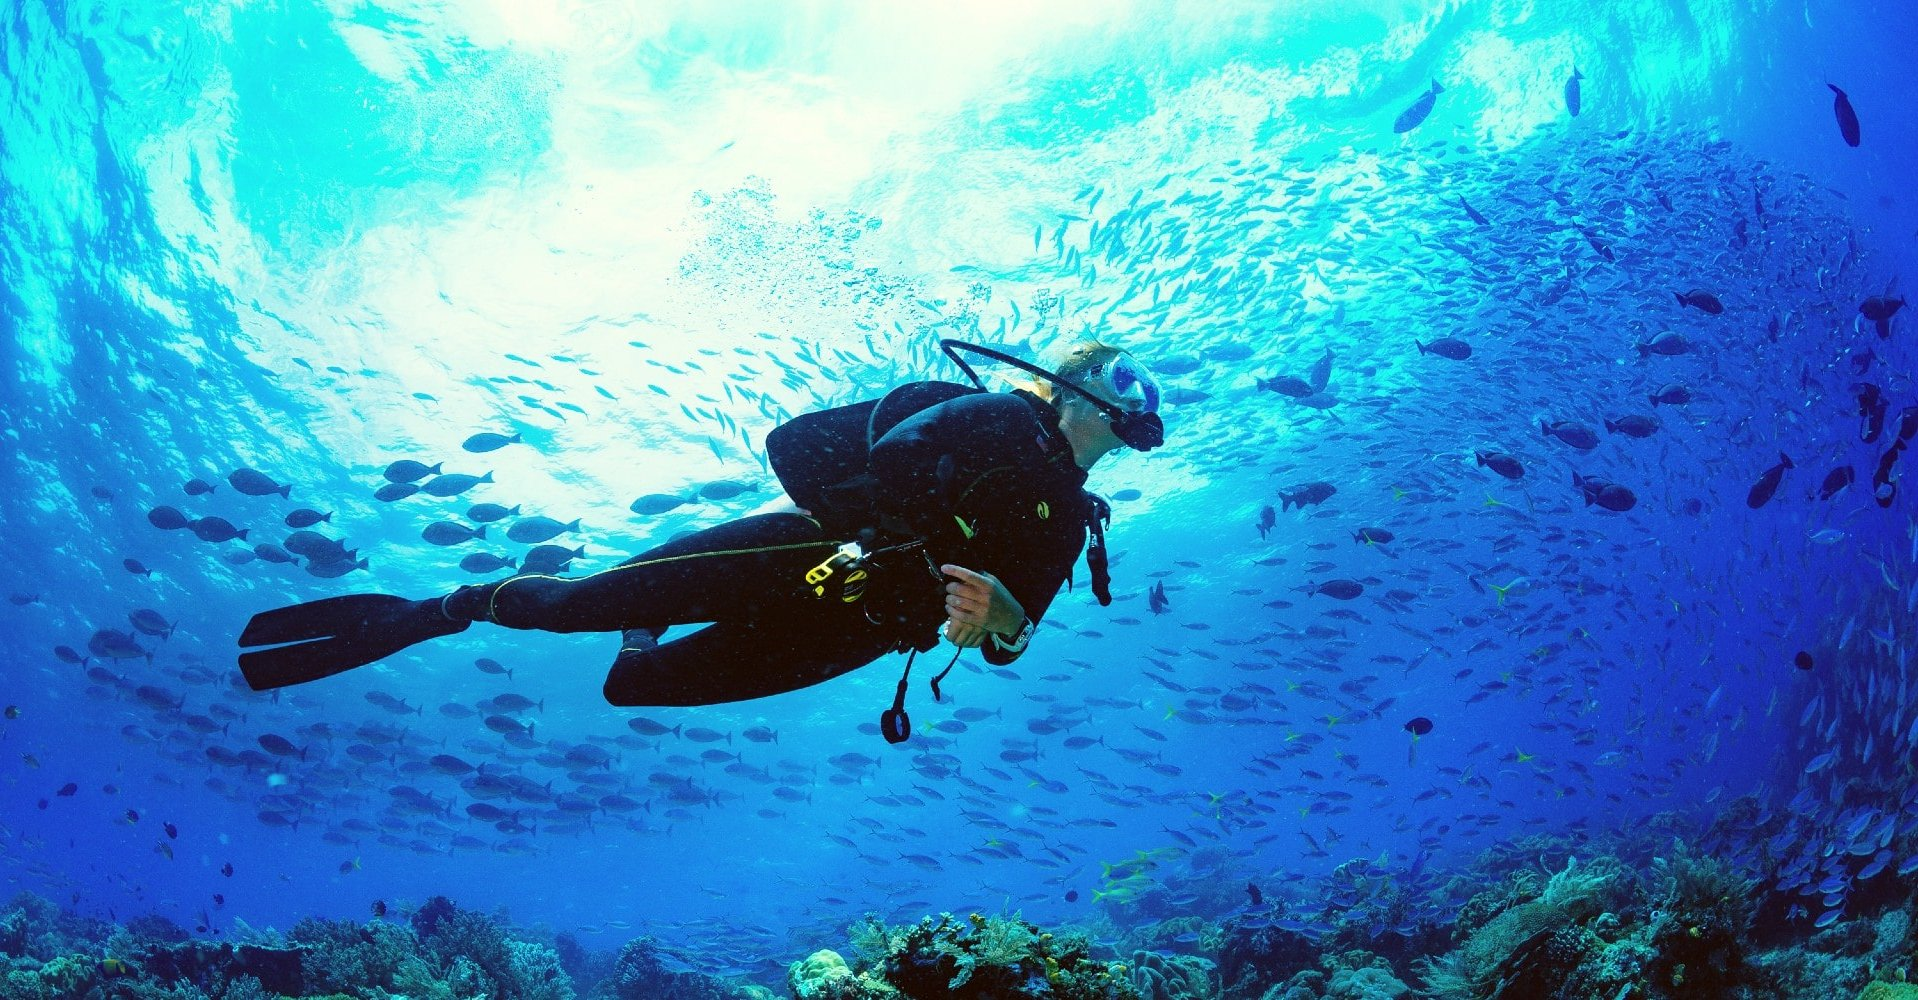 A woman shown scuba diving on the Canary Islands.